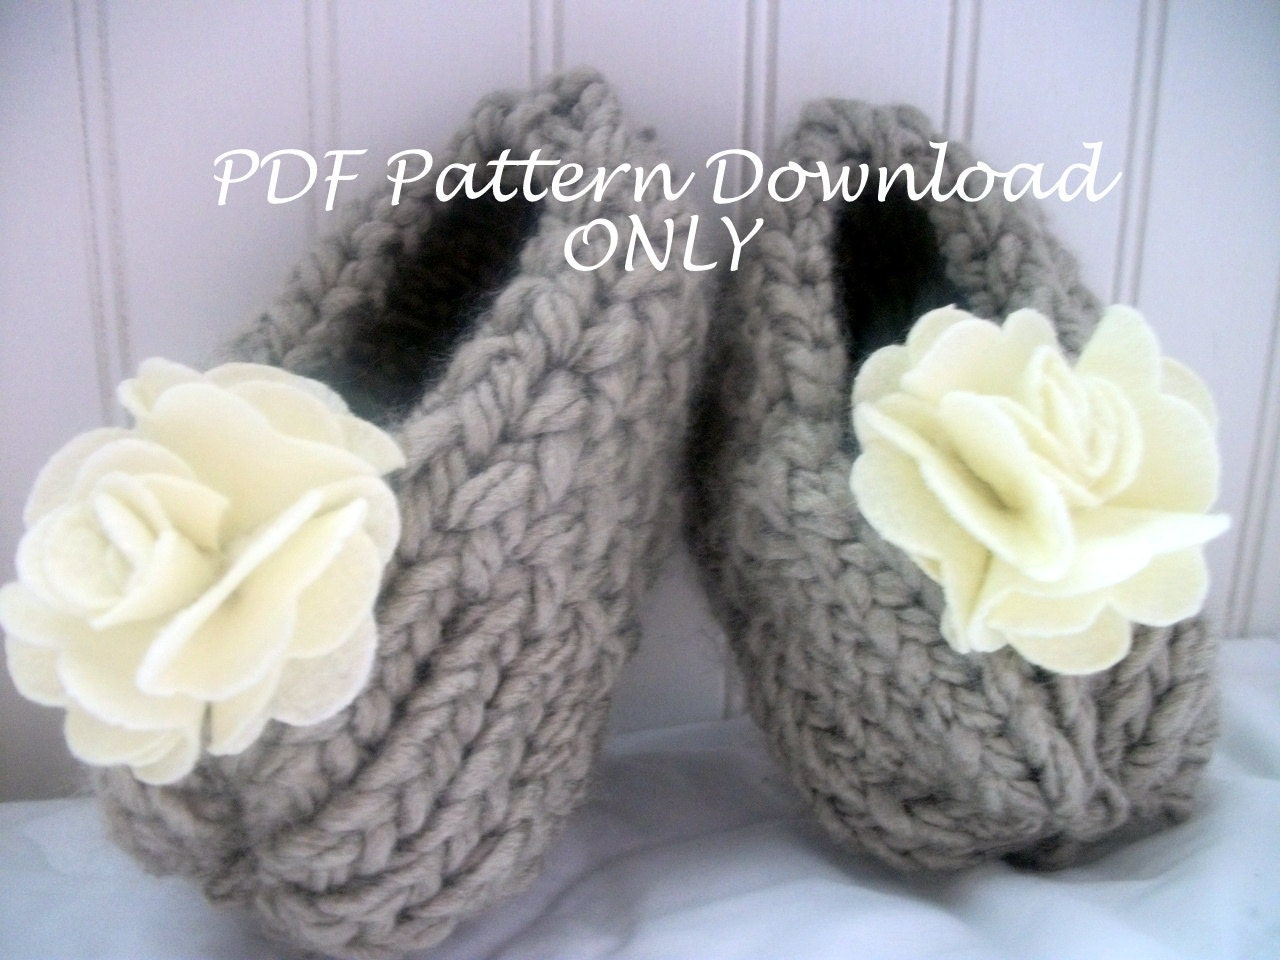 Loom Knitting Patterns For Beginners Pdf : Moved permanently